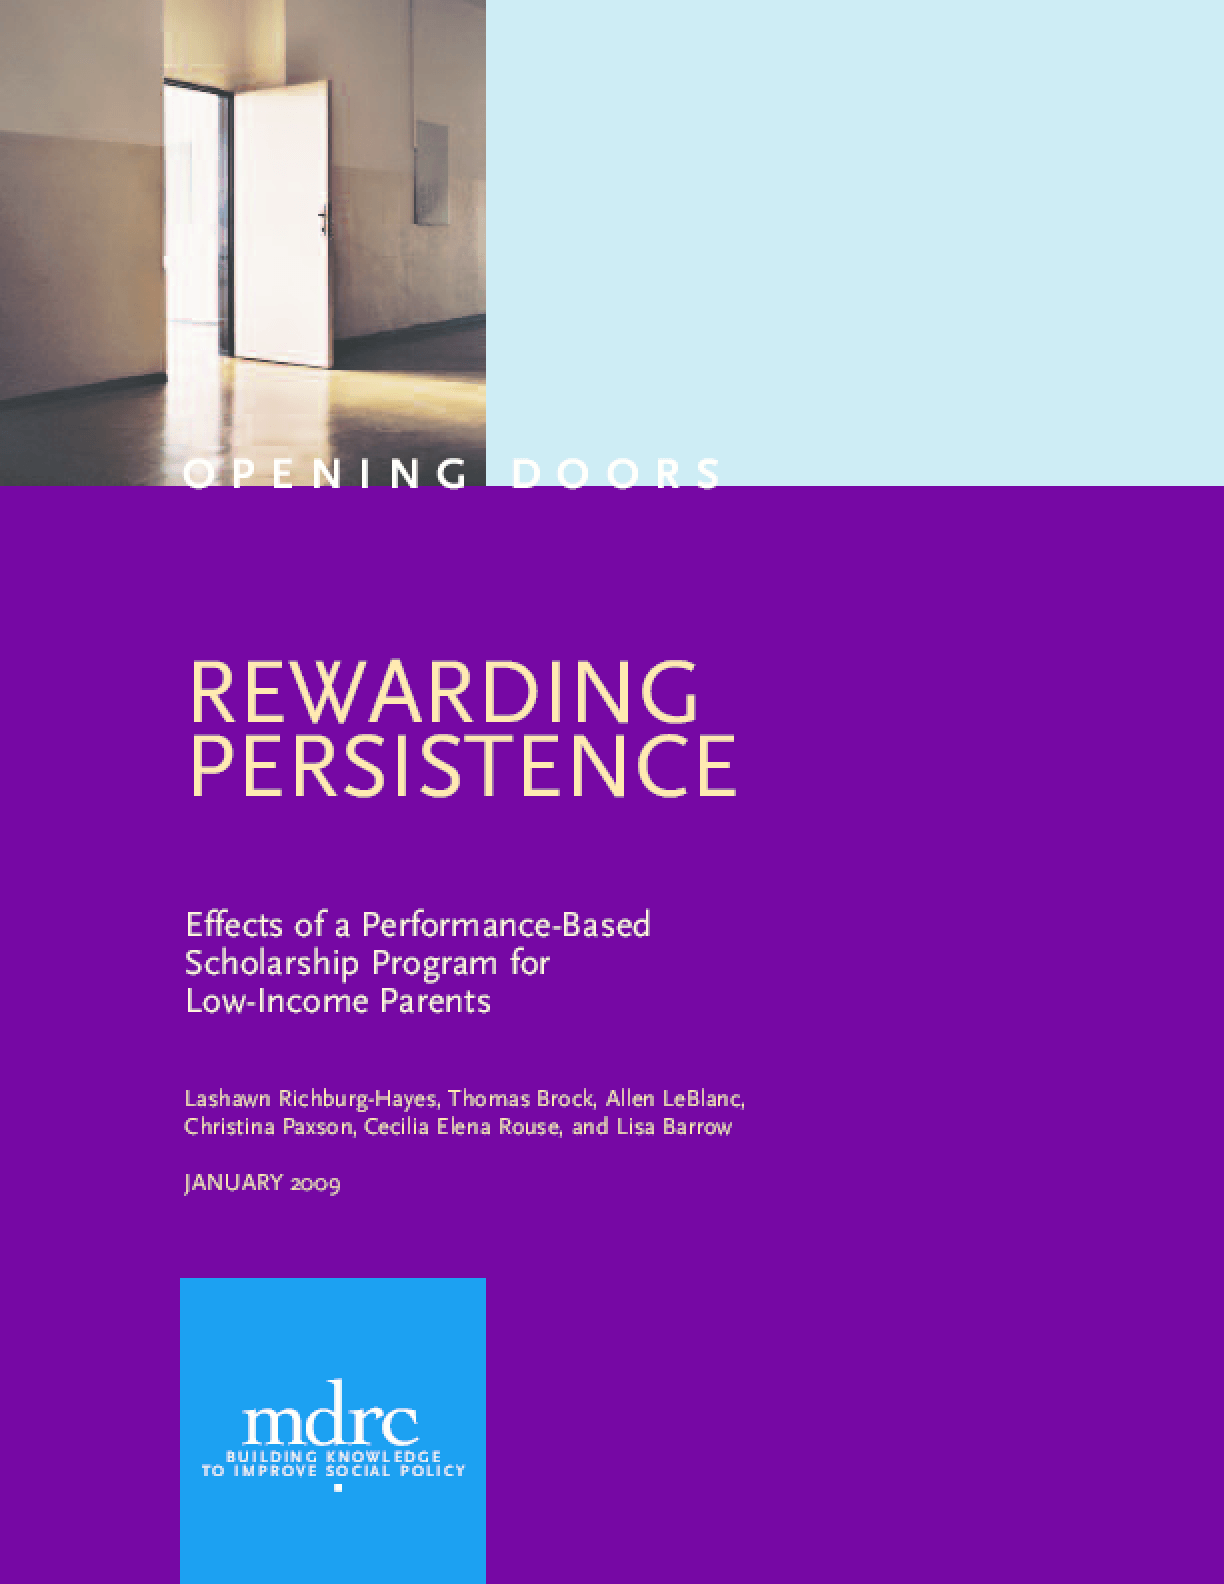 Rewarding Persistence: Effects of a Performance-Based Scholarship Program for Low-Income Parents